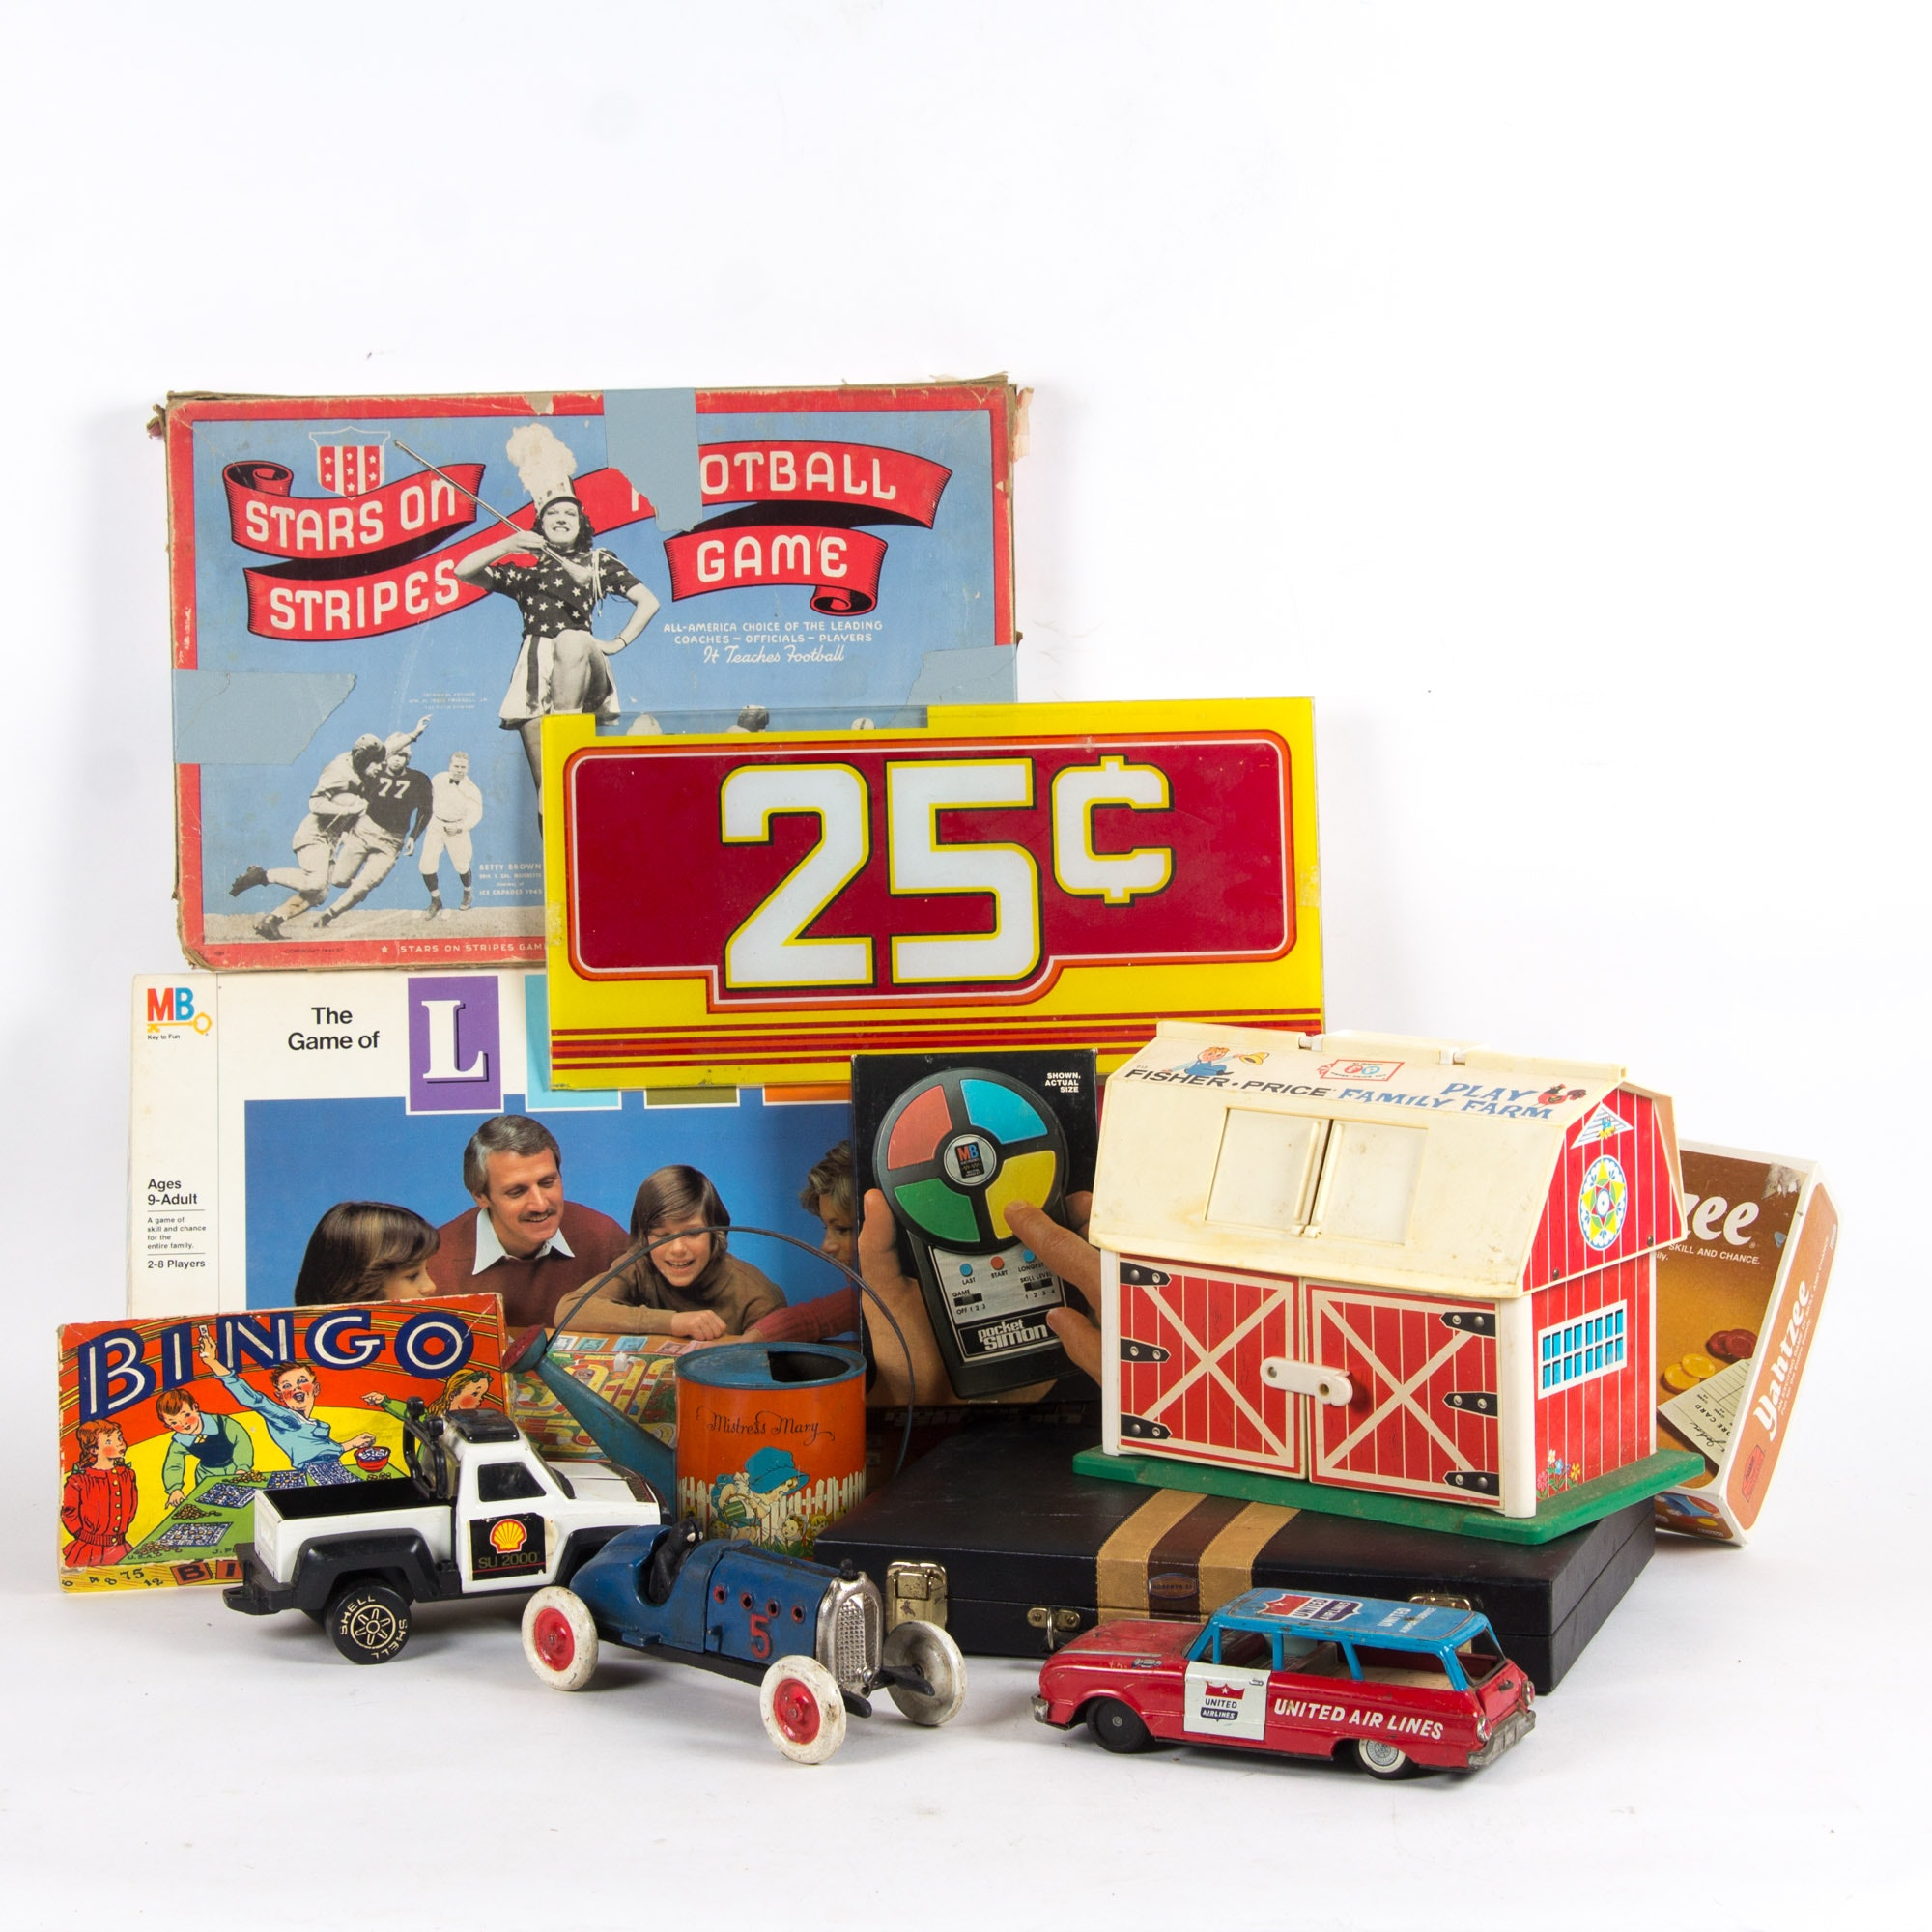 Assortment of Vintage Board Games and Toys